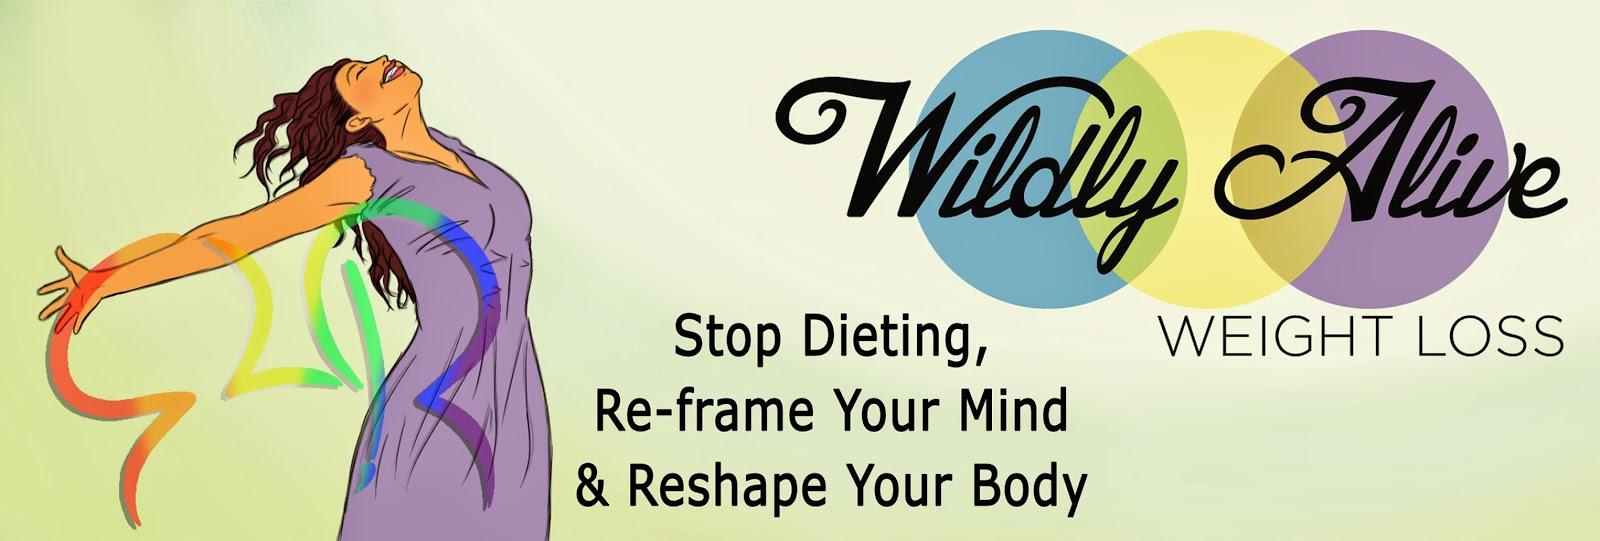 http://wildlyaliveweightloss.com/